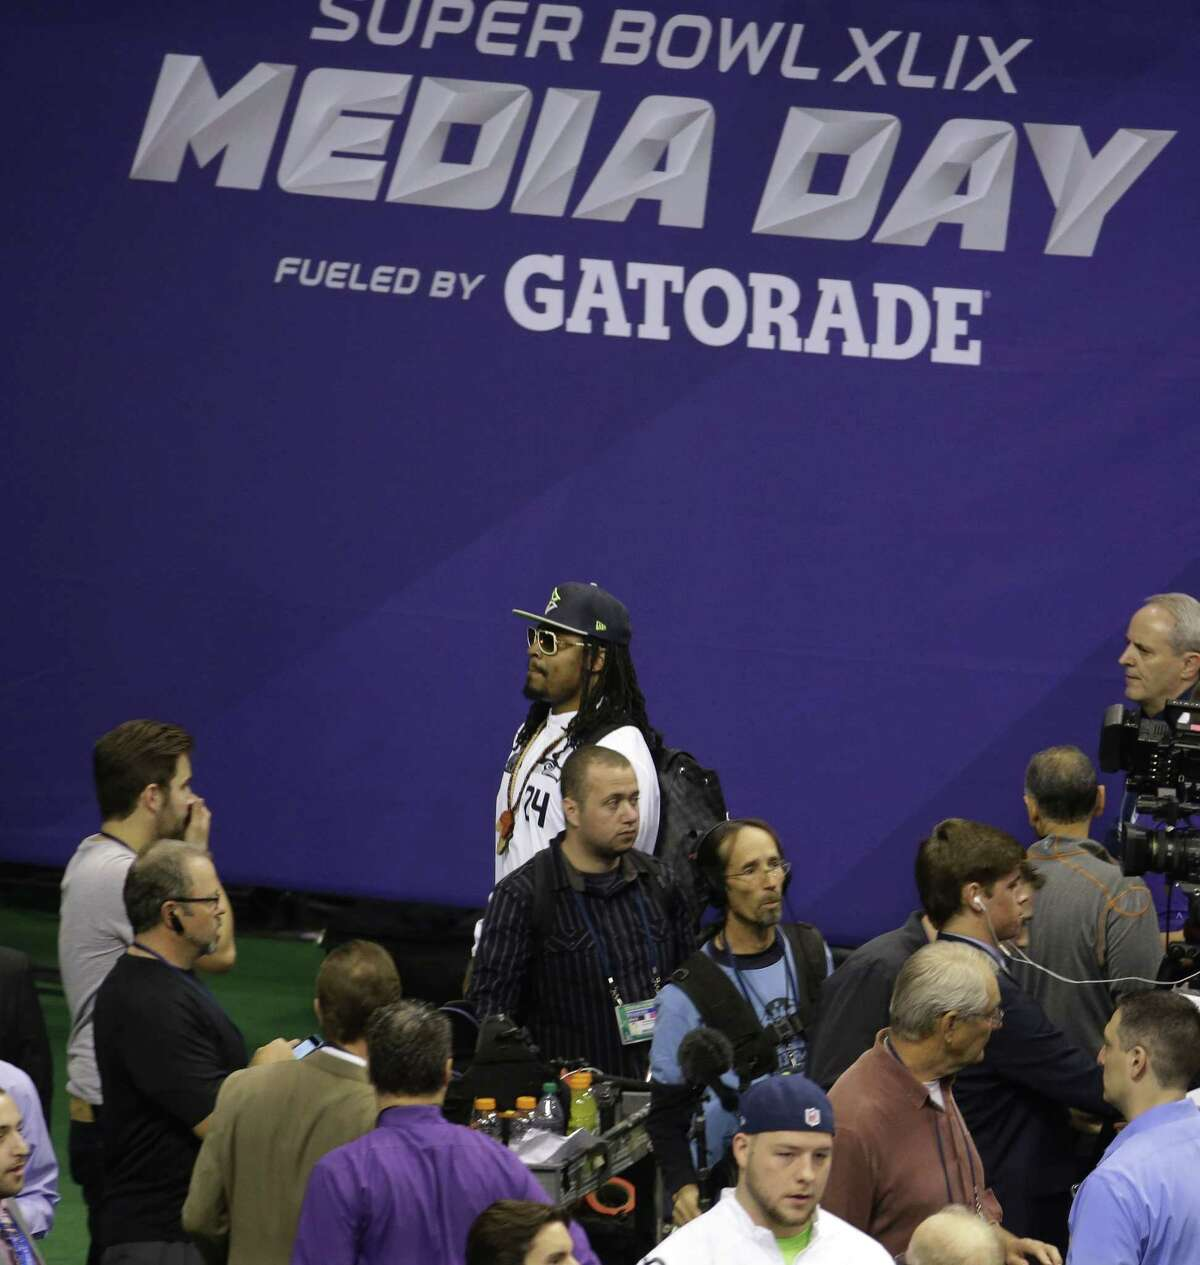 Seattle Seahawks running back Marshawn Lynch leaves at the beginning of Super Bowl media day on Tuesday in Phoenix.